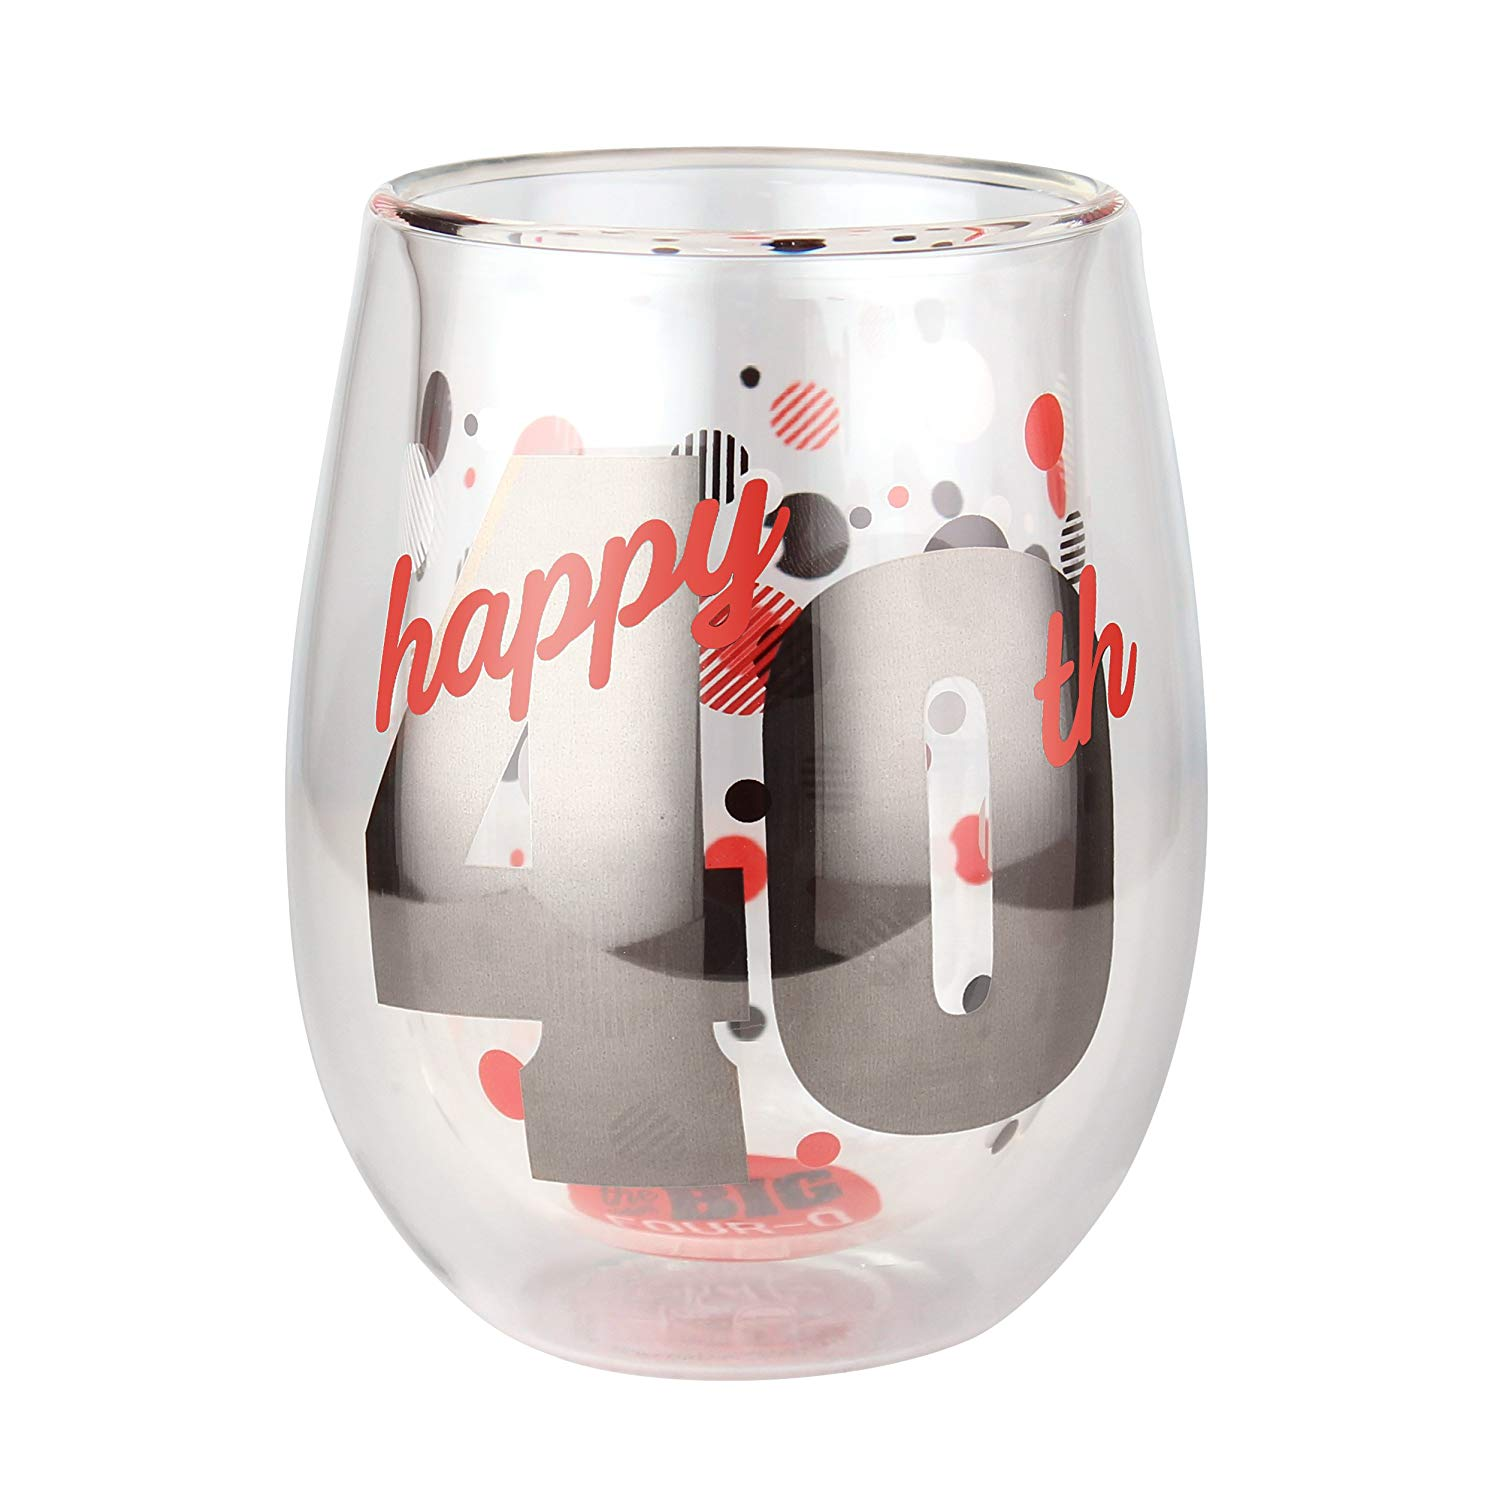 Top Shelf Double Wall Stemless 40th Birthday Wine Glass, Multicolor, Red or White Wine, Unique & Fun Gift Ideas for Him or Her, Memorable Gifts for Friends & Family